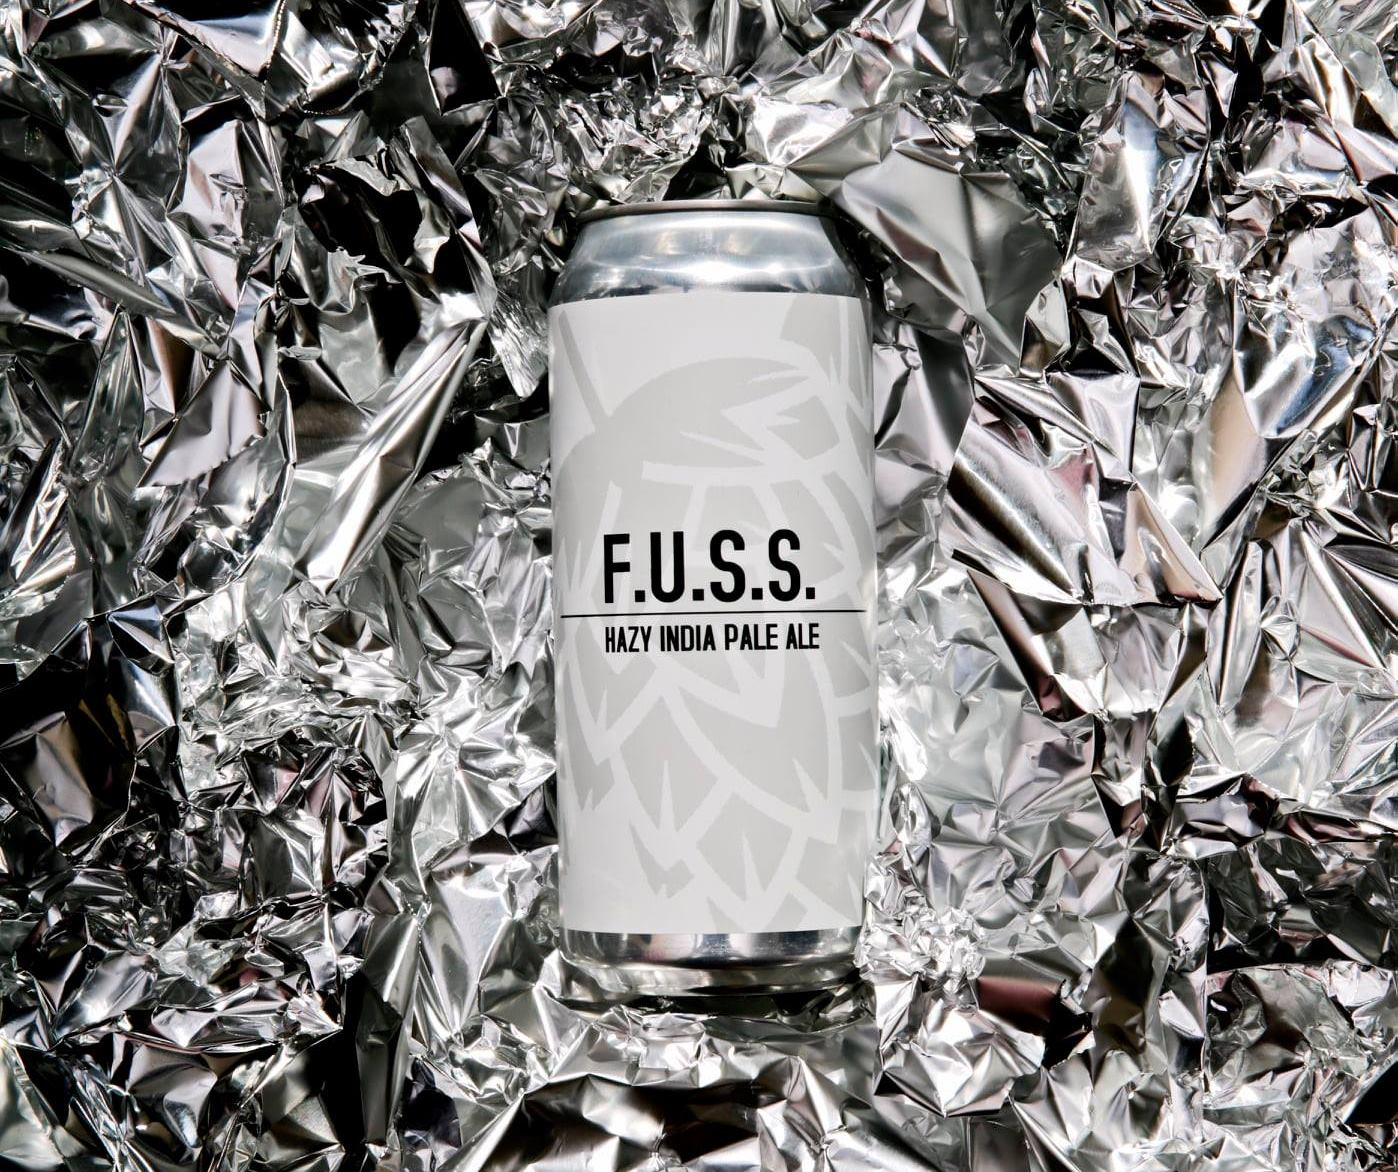 Can of Fuss, with a background of crinkled tin foil